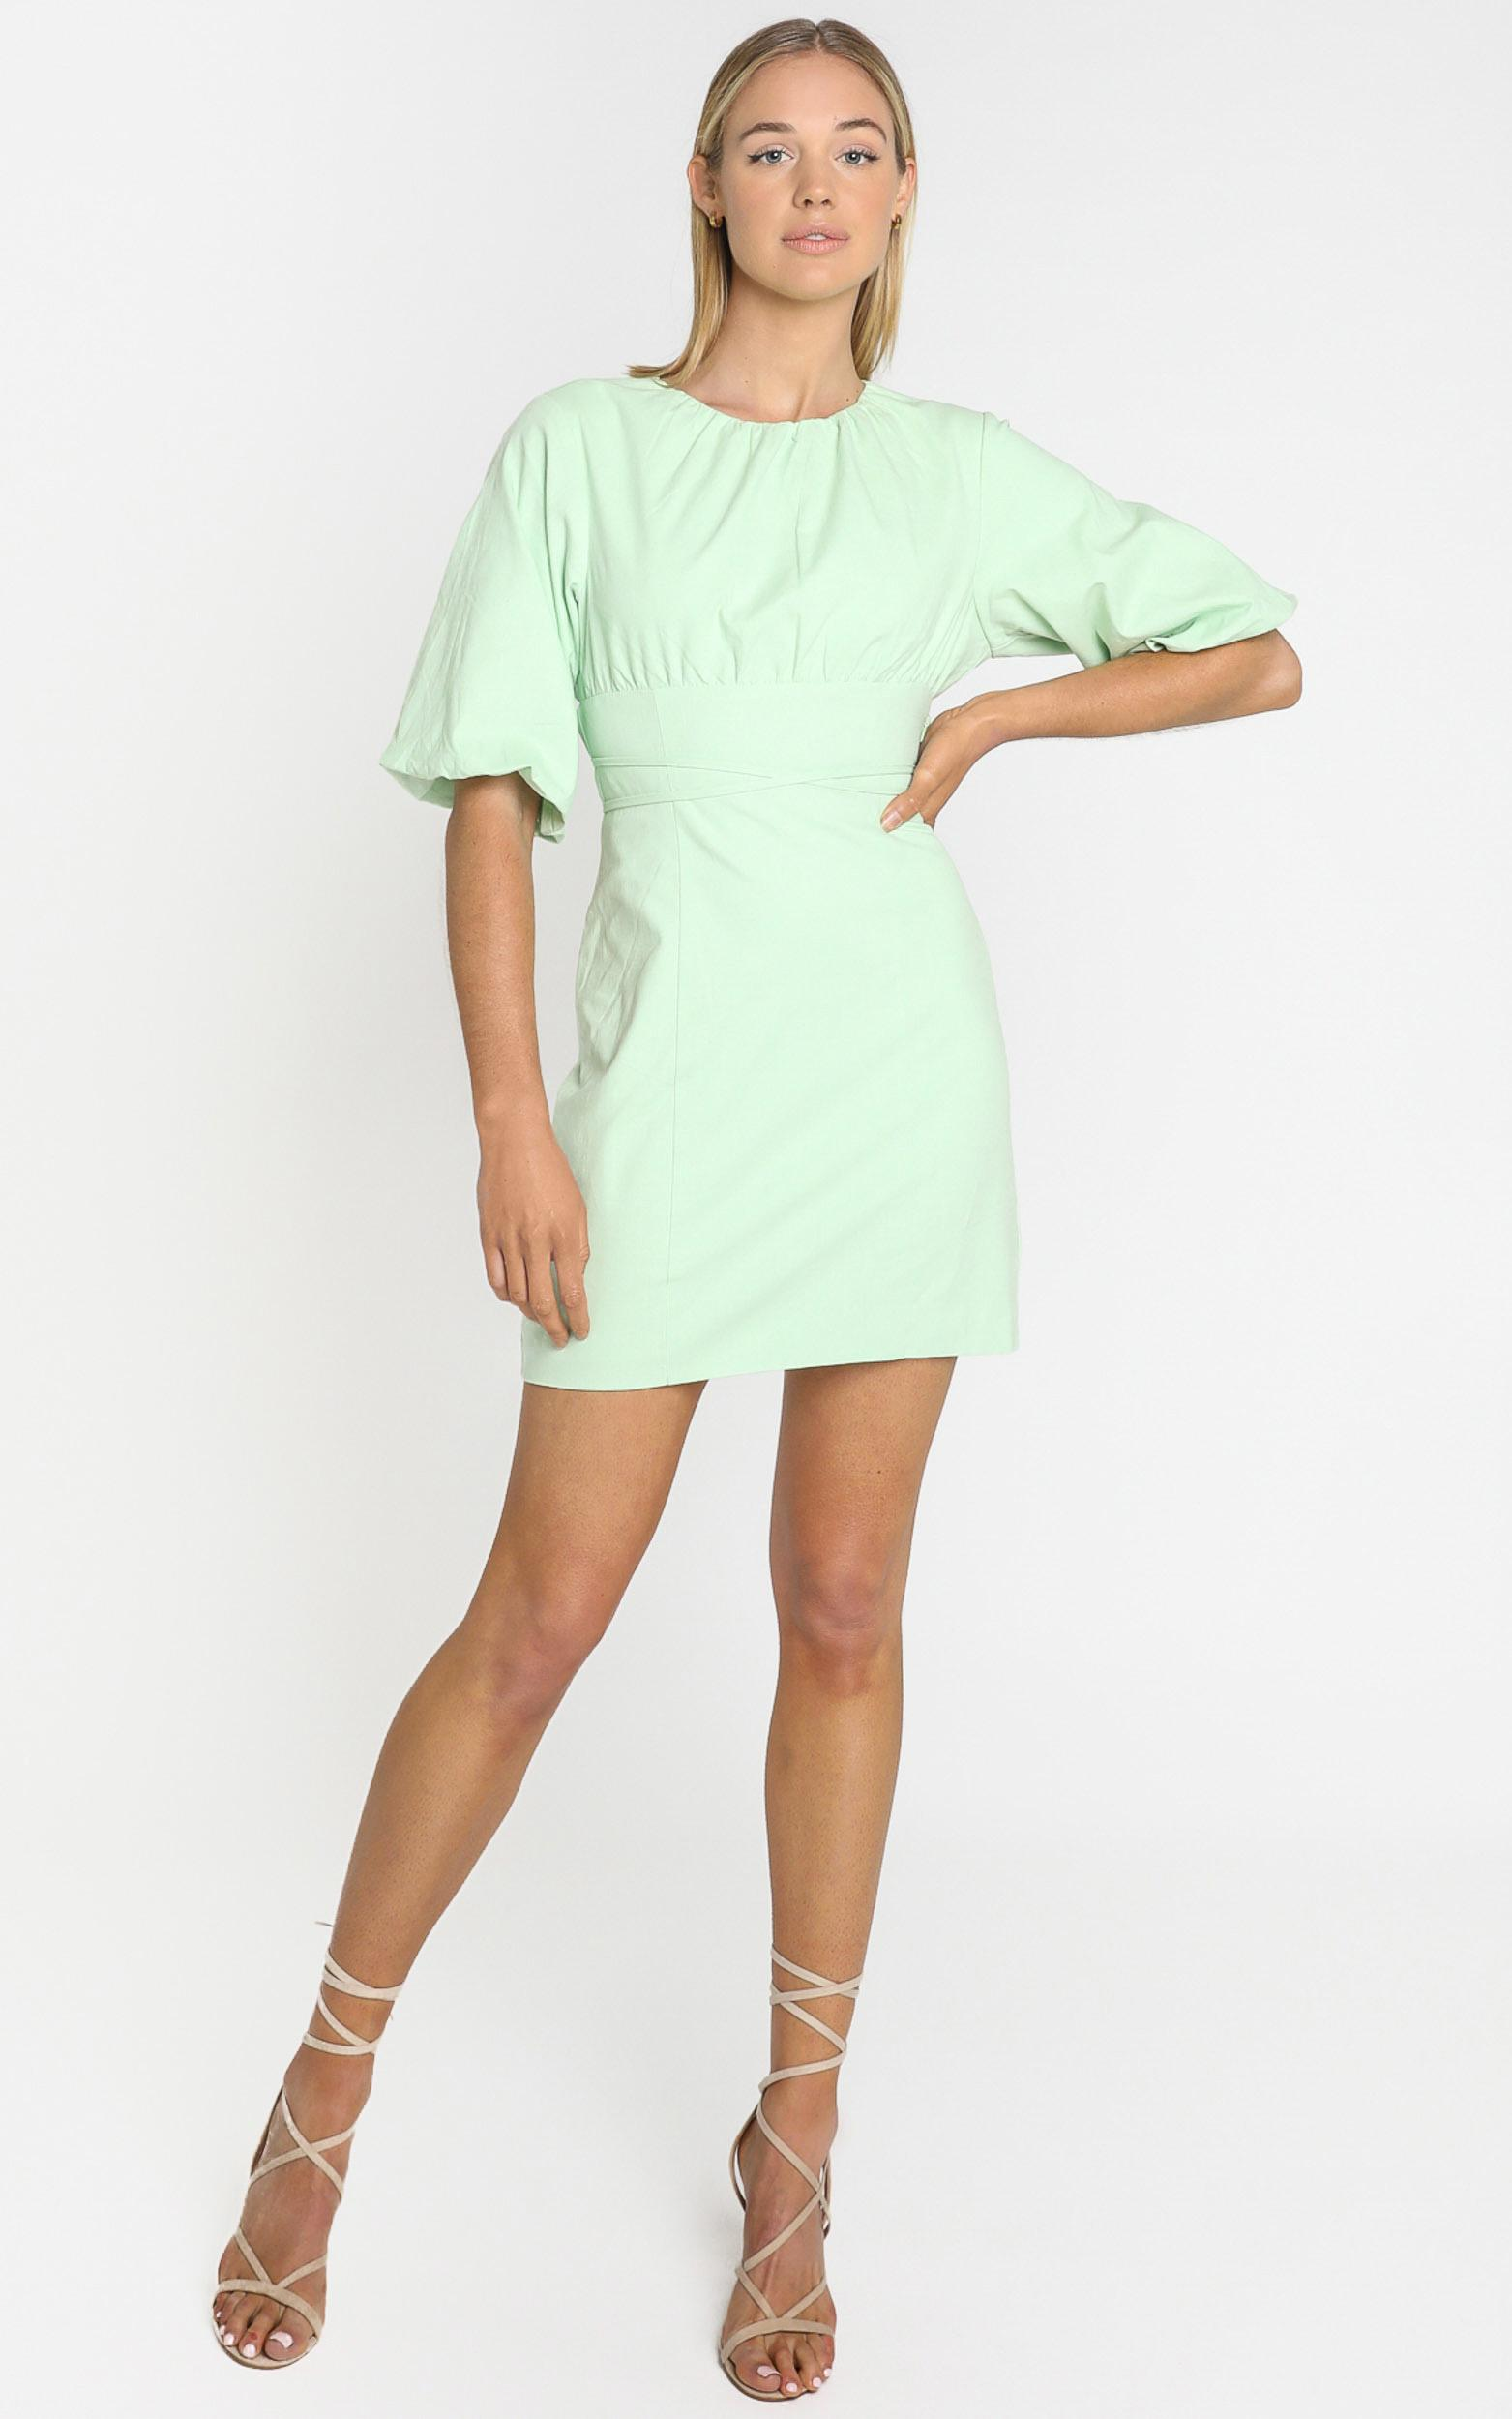 Daydreaming dress in mint - 6 (XS), GRN1, hi-res image number null